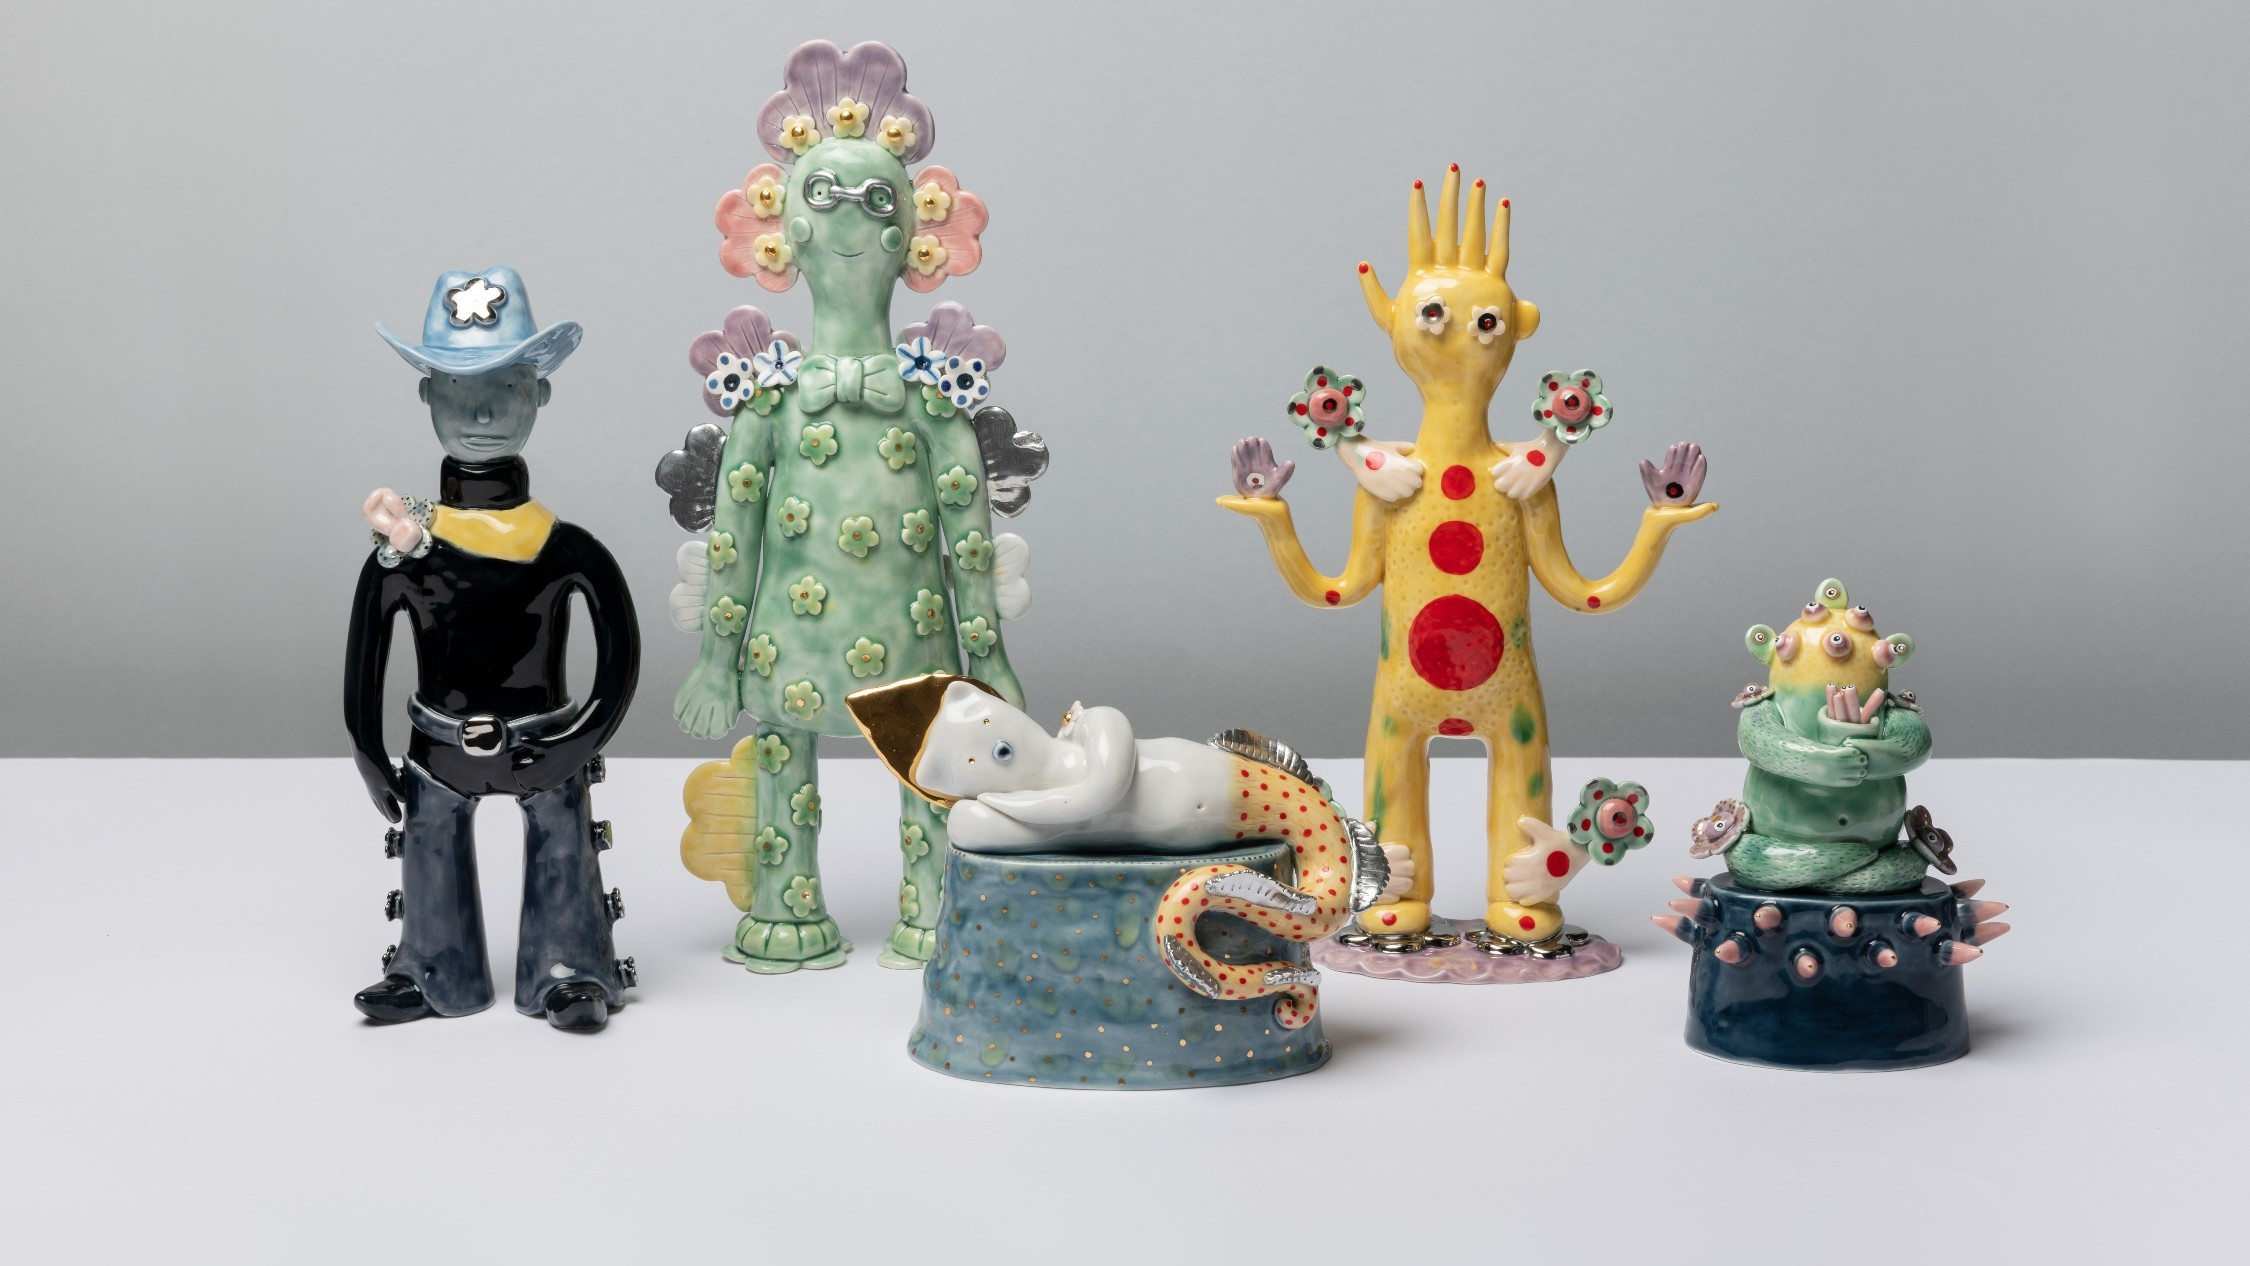 A collection of quirky, friendly-looking porcelain figurines